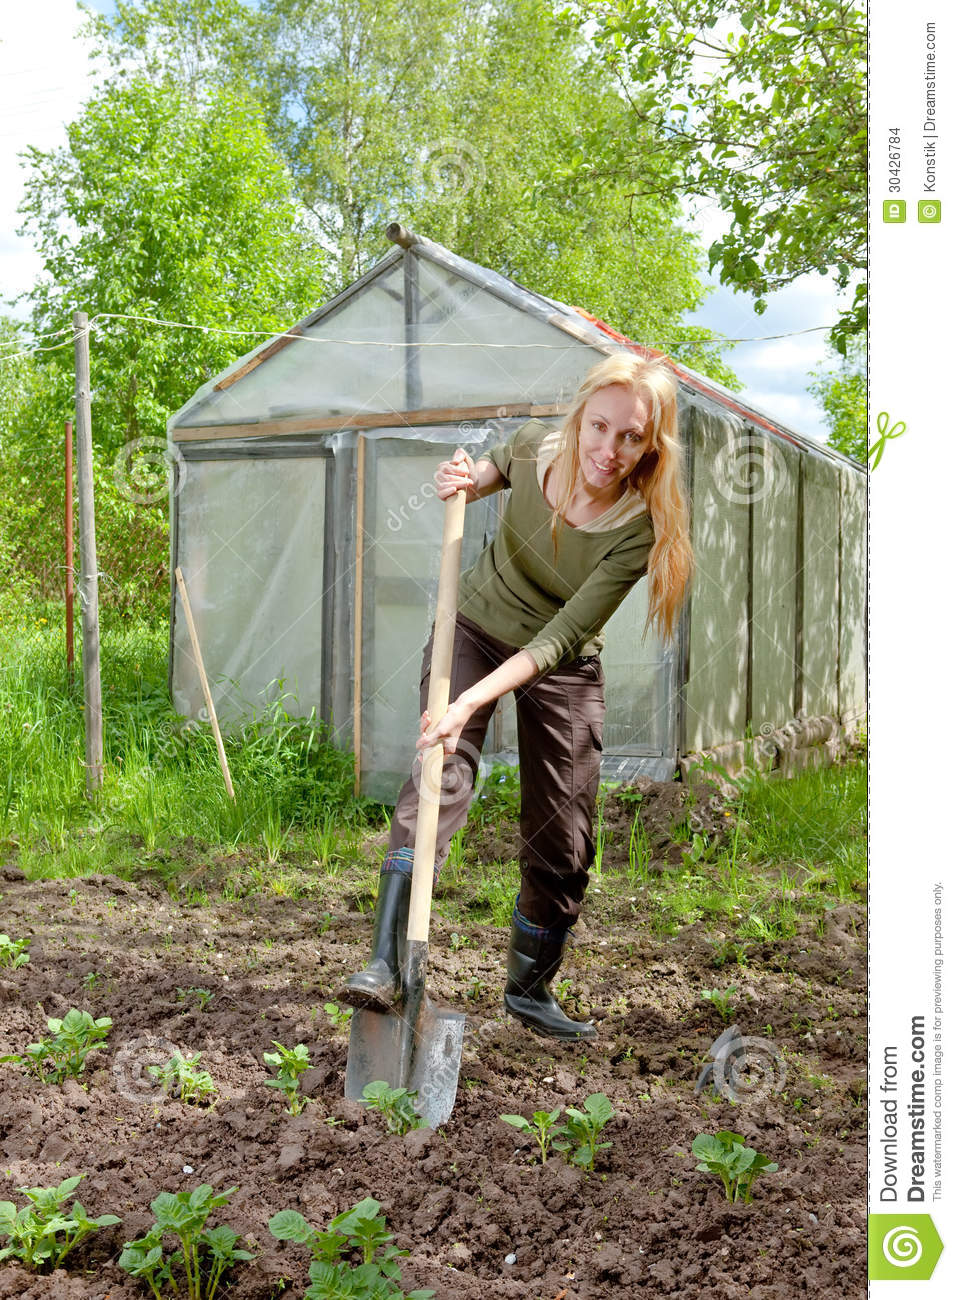 The Woman In Rubber Boots With A Shovel Stock Images - Image: 30426784